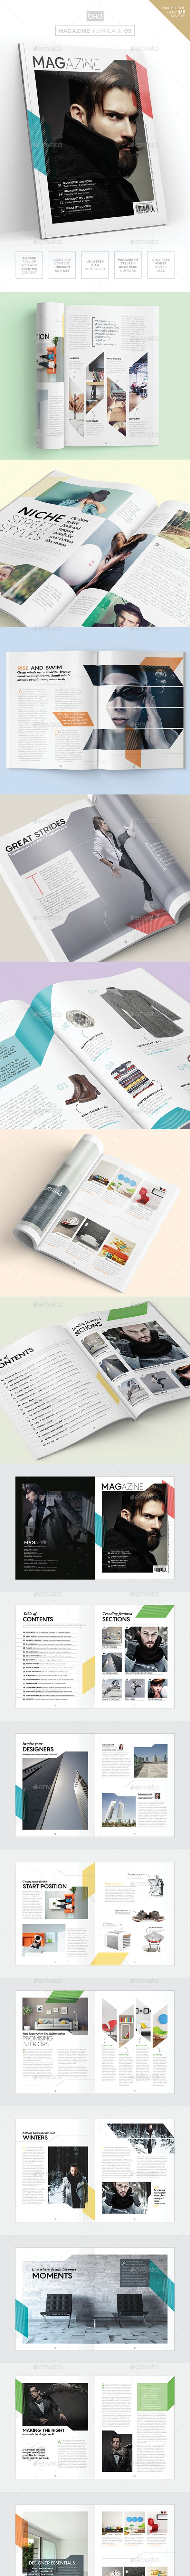 Magazine Template Indesign 40 Page Layout V9 By Boxedcreative